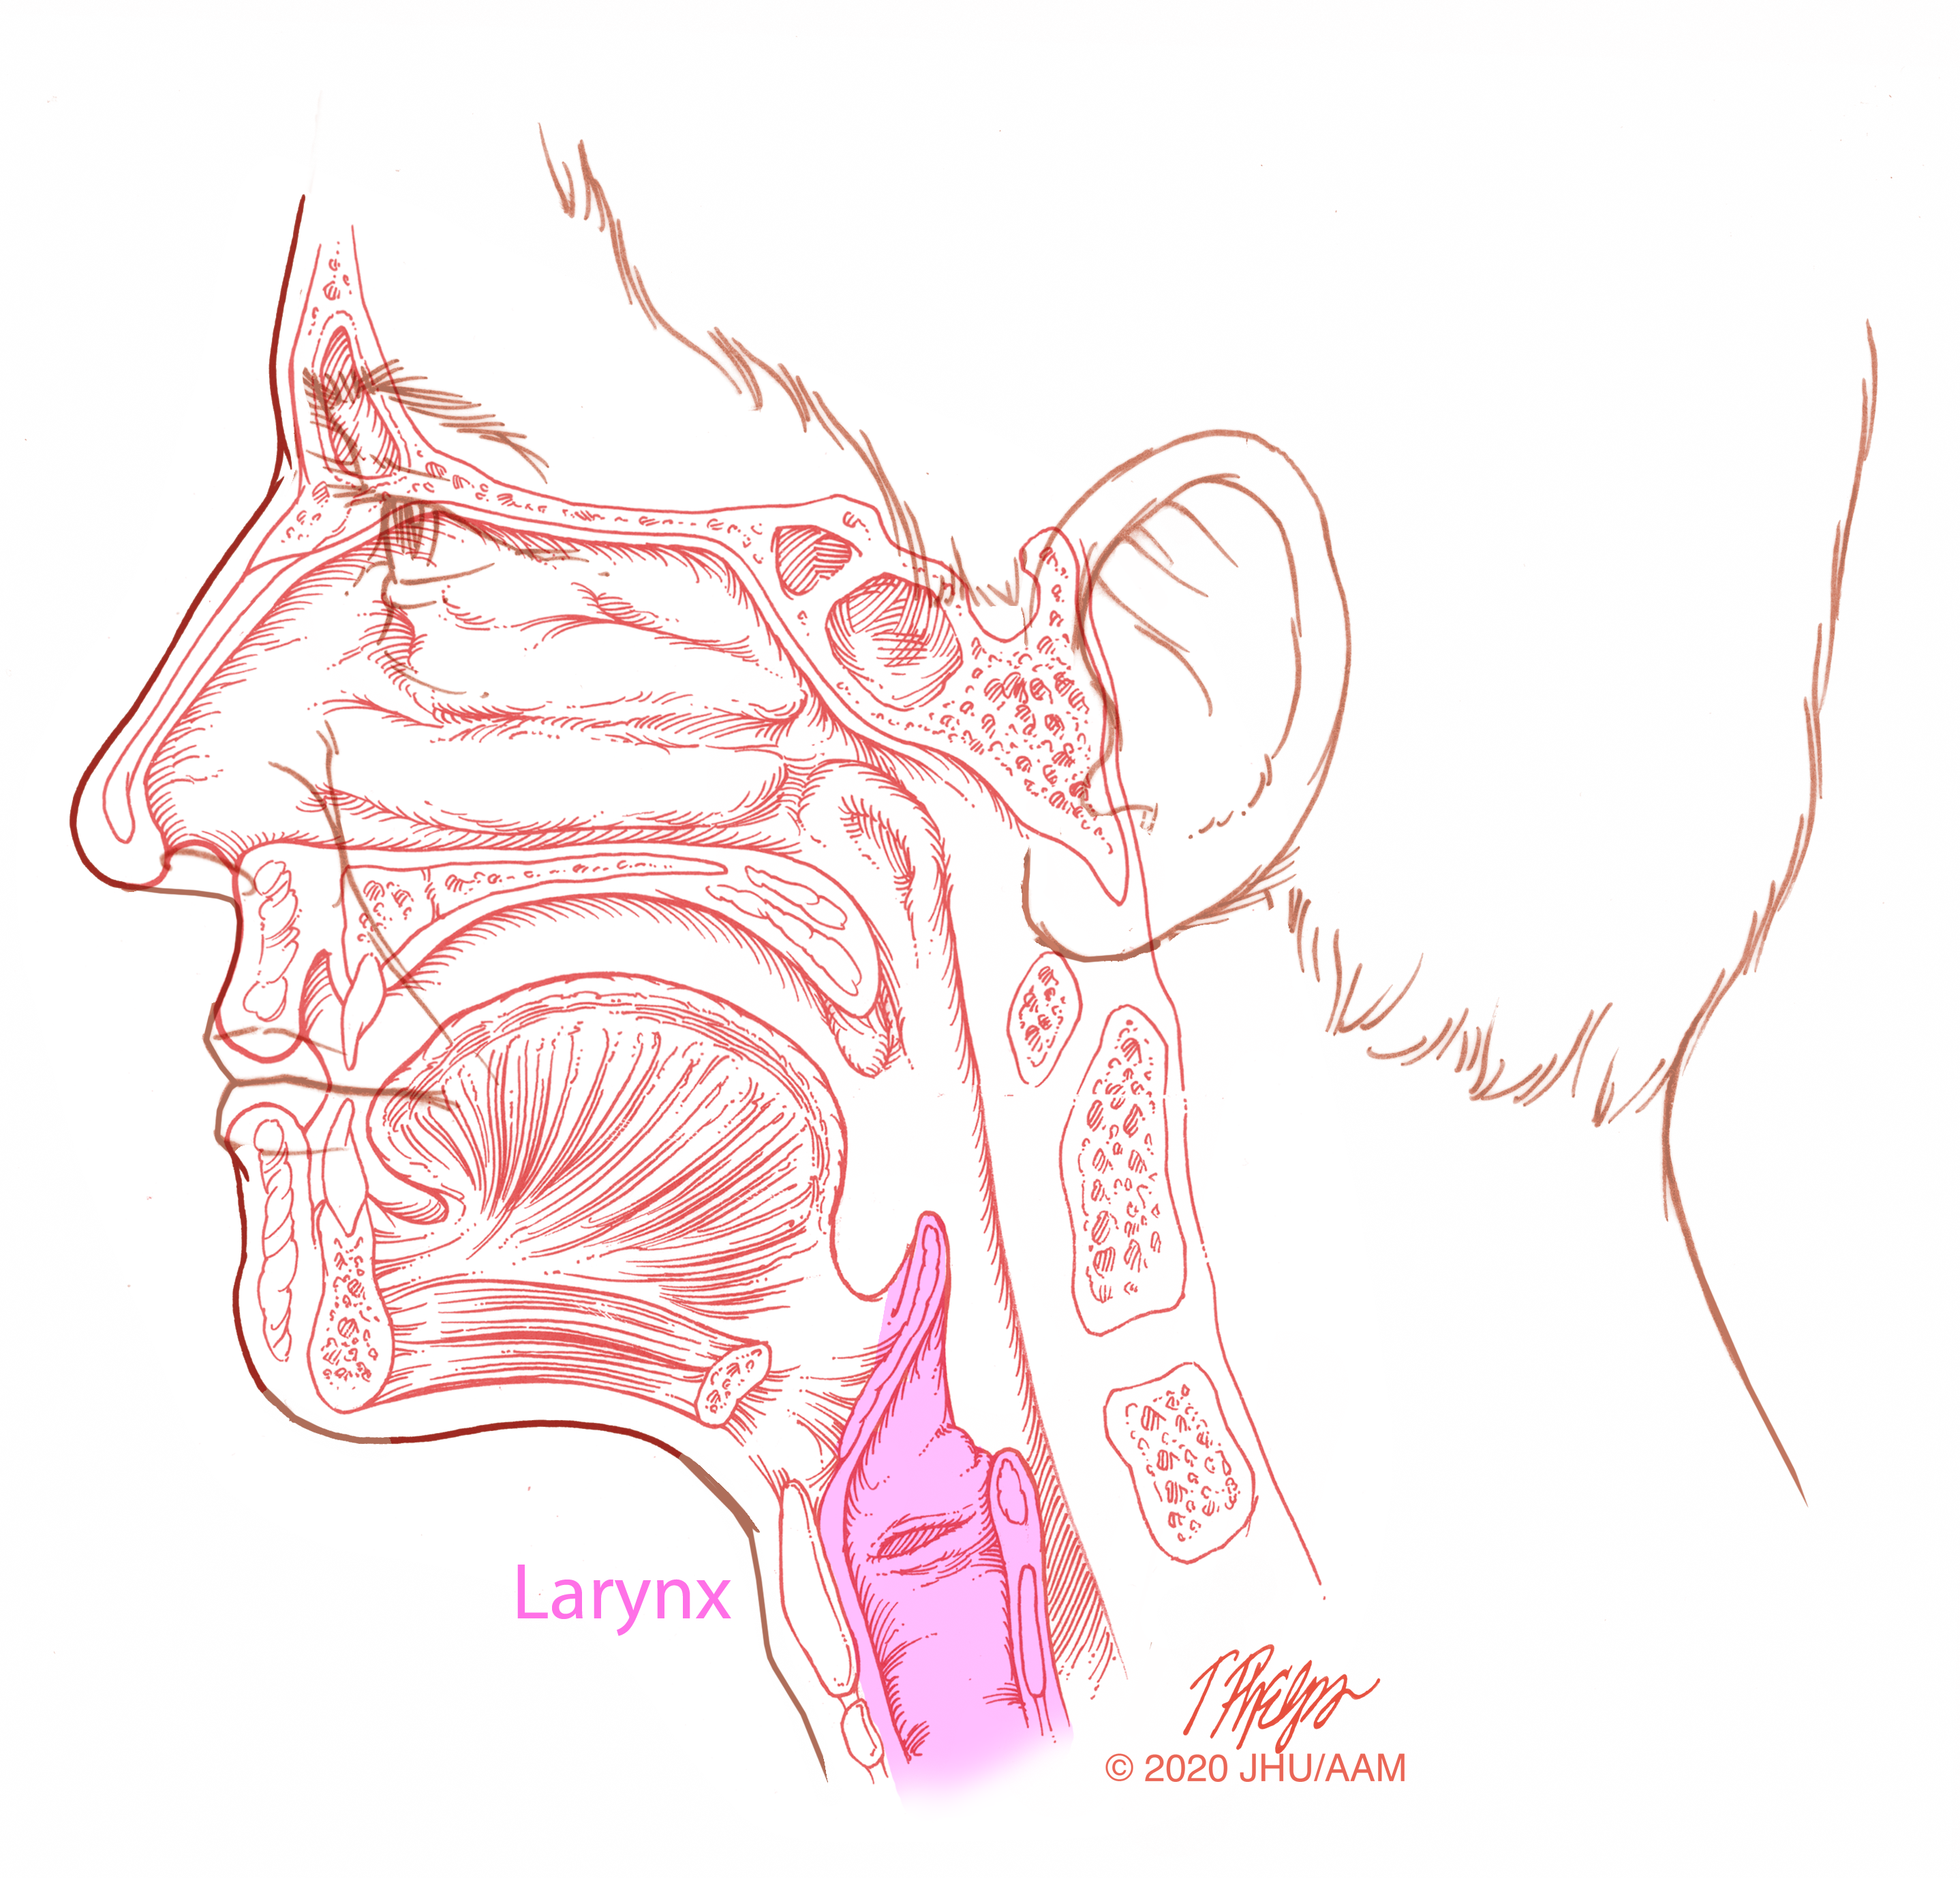 sagittal larynx illustration